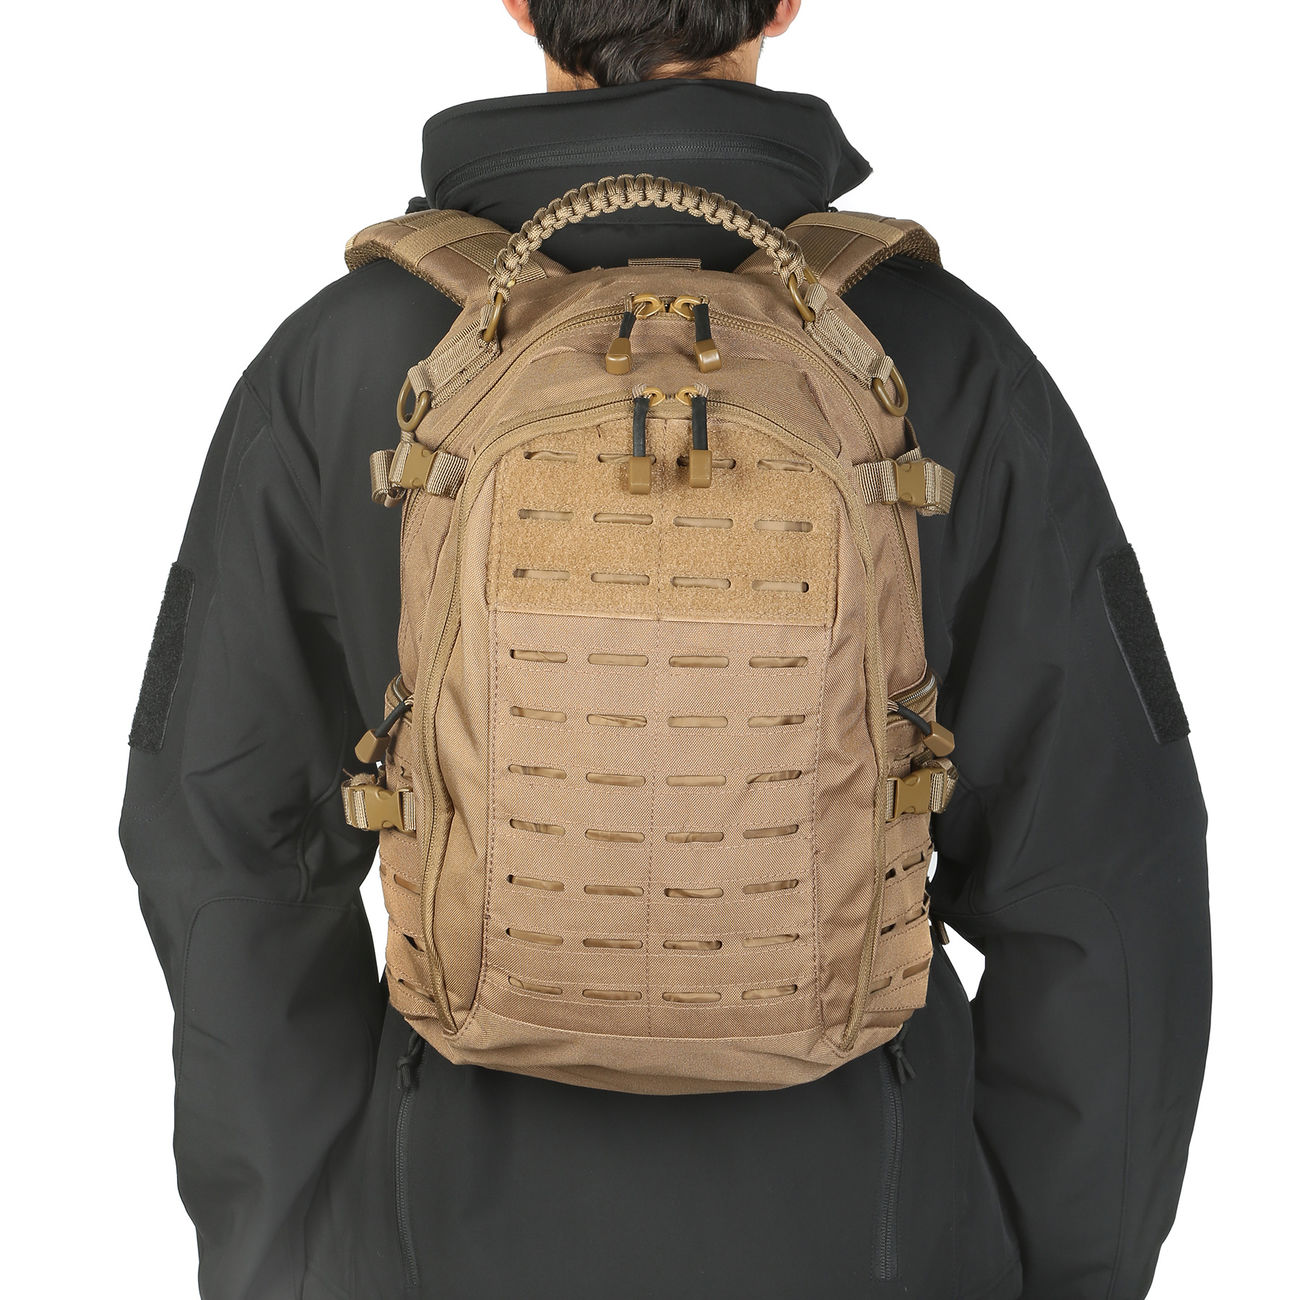 Mil-Tec Rucksack Mission Pack Laser Cut Small dark coyote 10